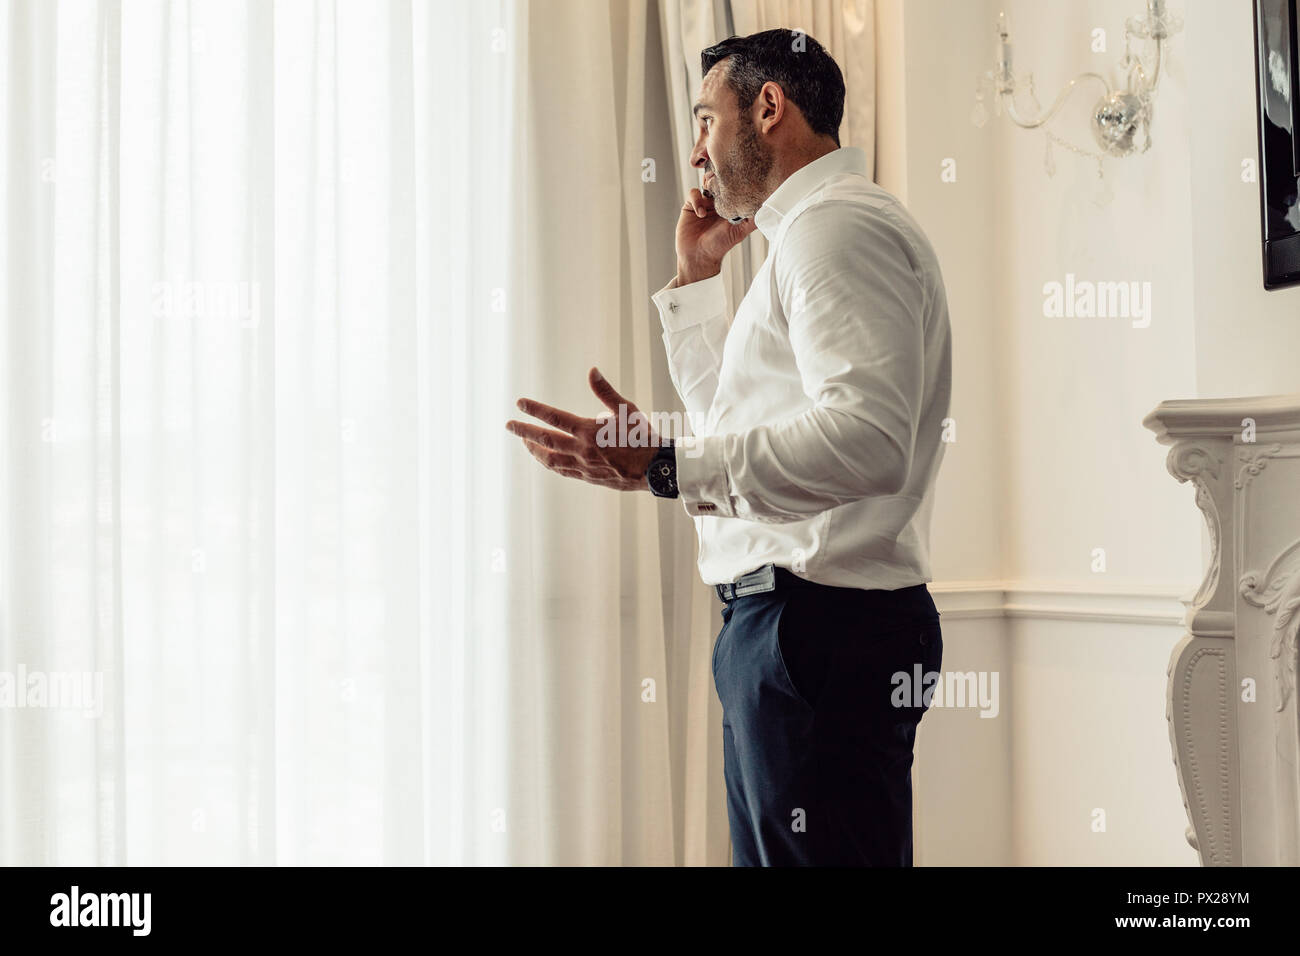 Side view of businessman talking on mobile phone while standing in hotel room. CEO having an important discussing over phone. - Stock Image